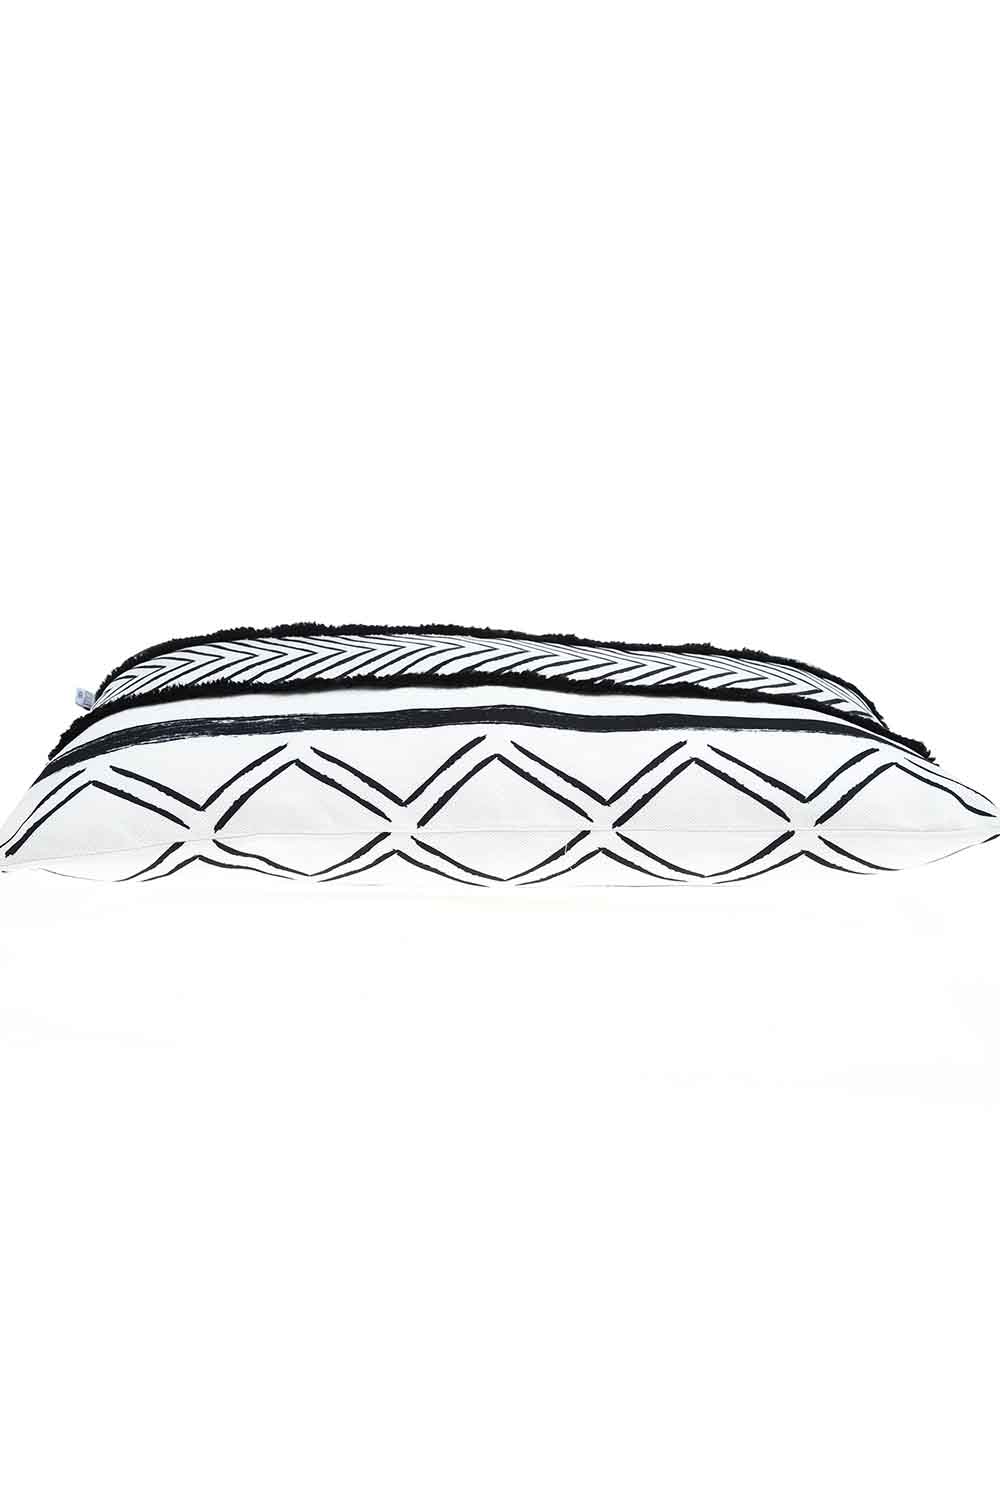 MIZALLE Pillow Case (Zigzag) (1)